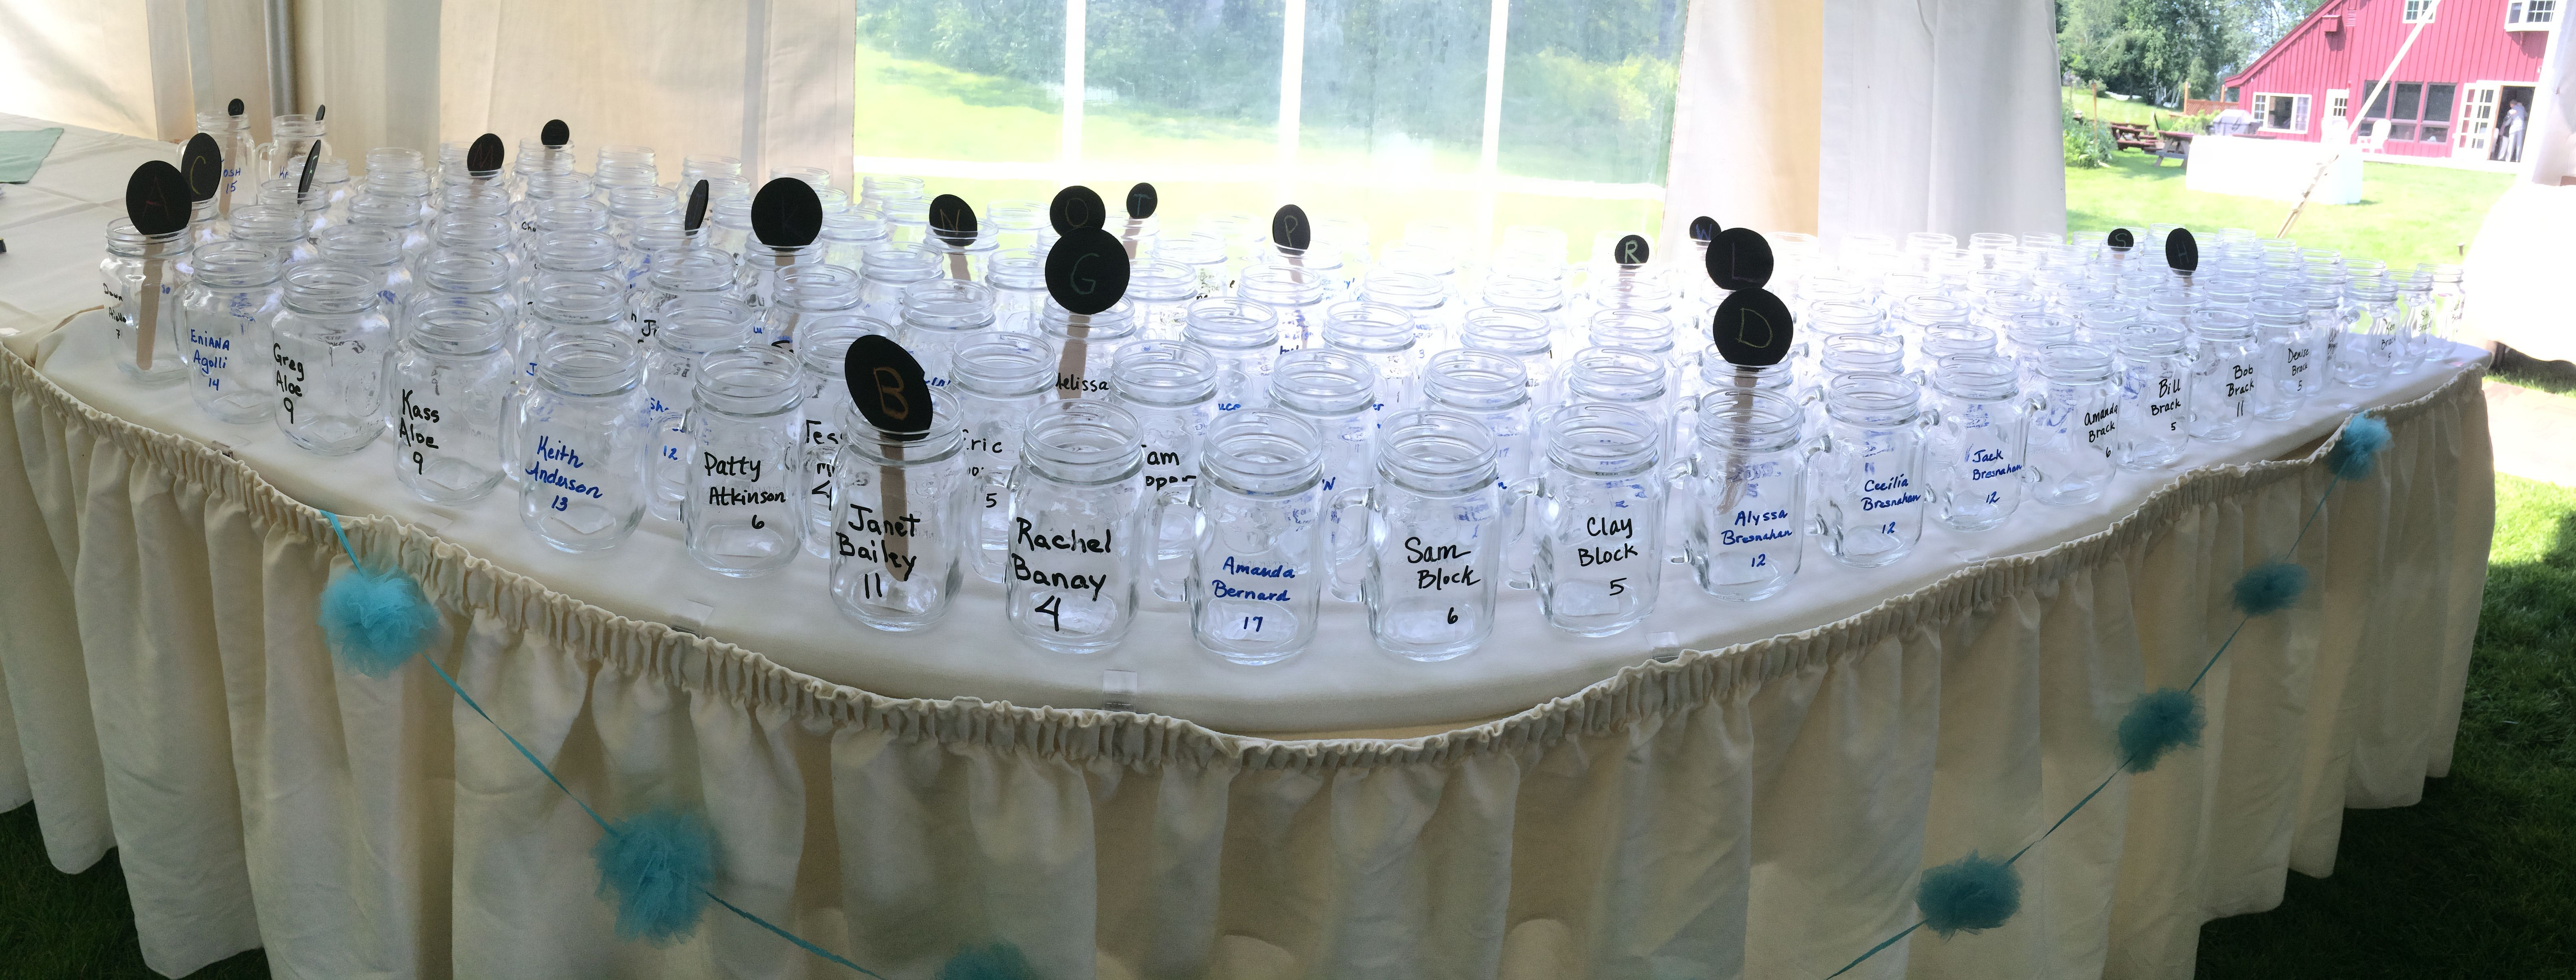 Mason jars are all the rage. Sharpie oil-based markers denote names and table numbers. Small signs help guests find their last name by alphabetical order.  Guests find their mugs to find their table, they reuse their mug all night (no wasting 10 plastic cups!) and take it home with them as a favor to remember your wedding day! #masonjar #masonjarwedding #weddingfavors #placecards